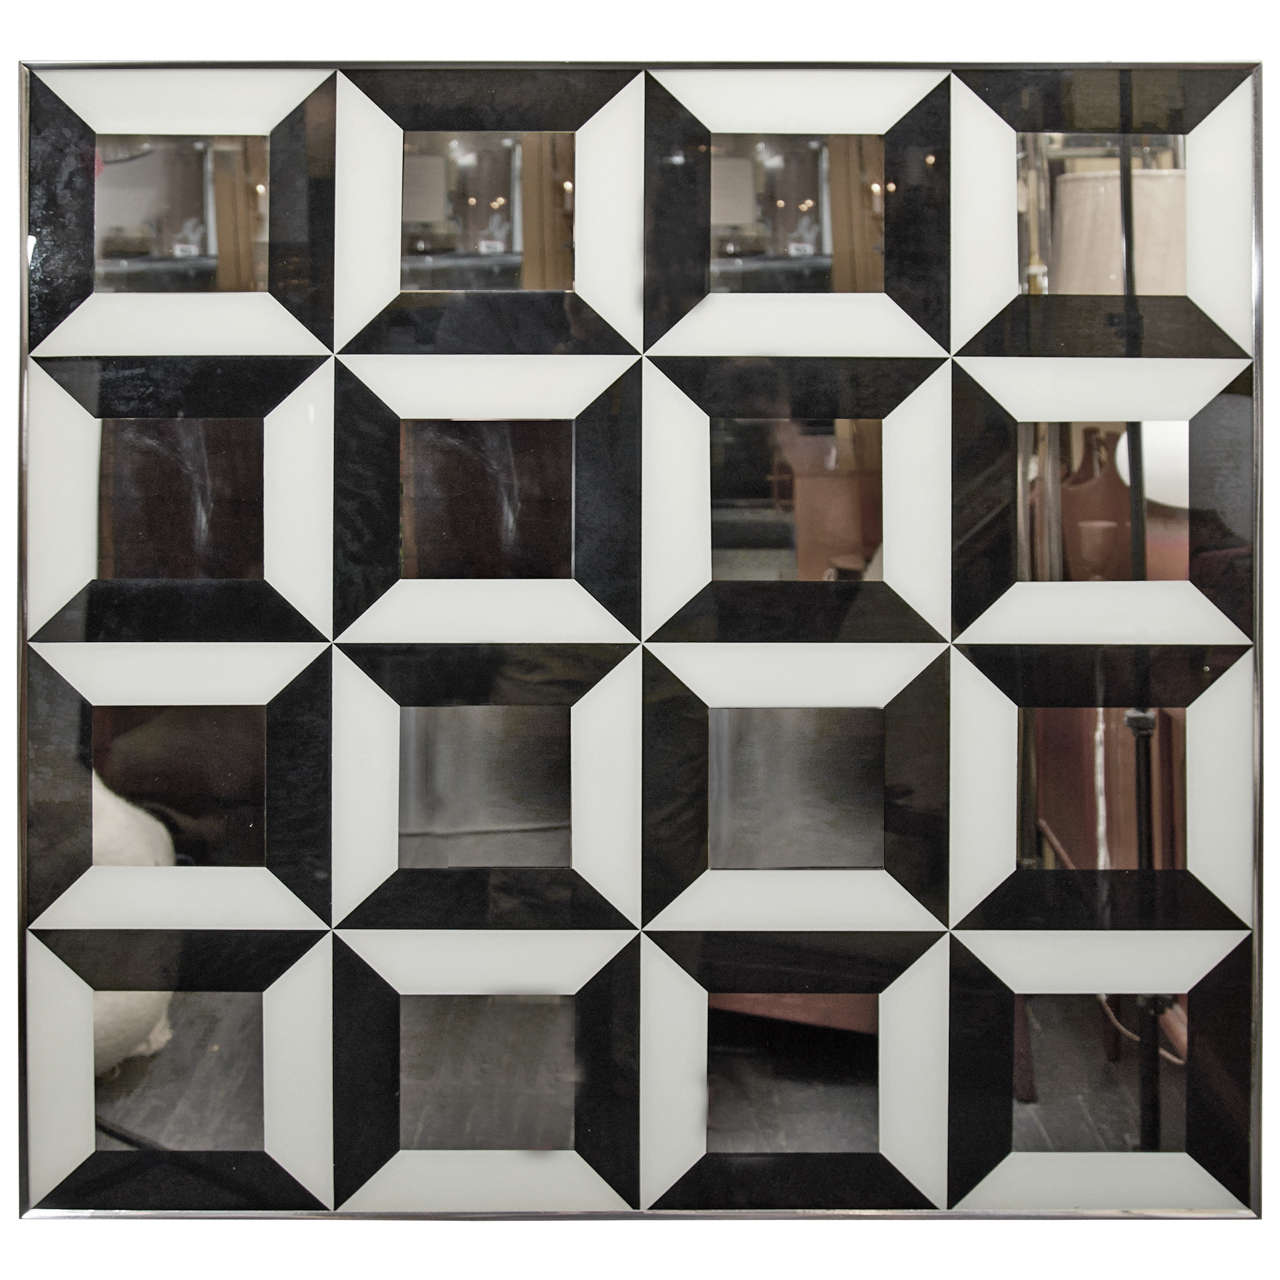 Mod, geometric op art mirror with a grid of black and white reverse painted graphics. Can be mounted square or diagonally. Please contact for location. Offered by Las Venus by Kenneth Clark, New York City.